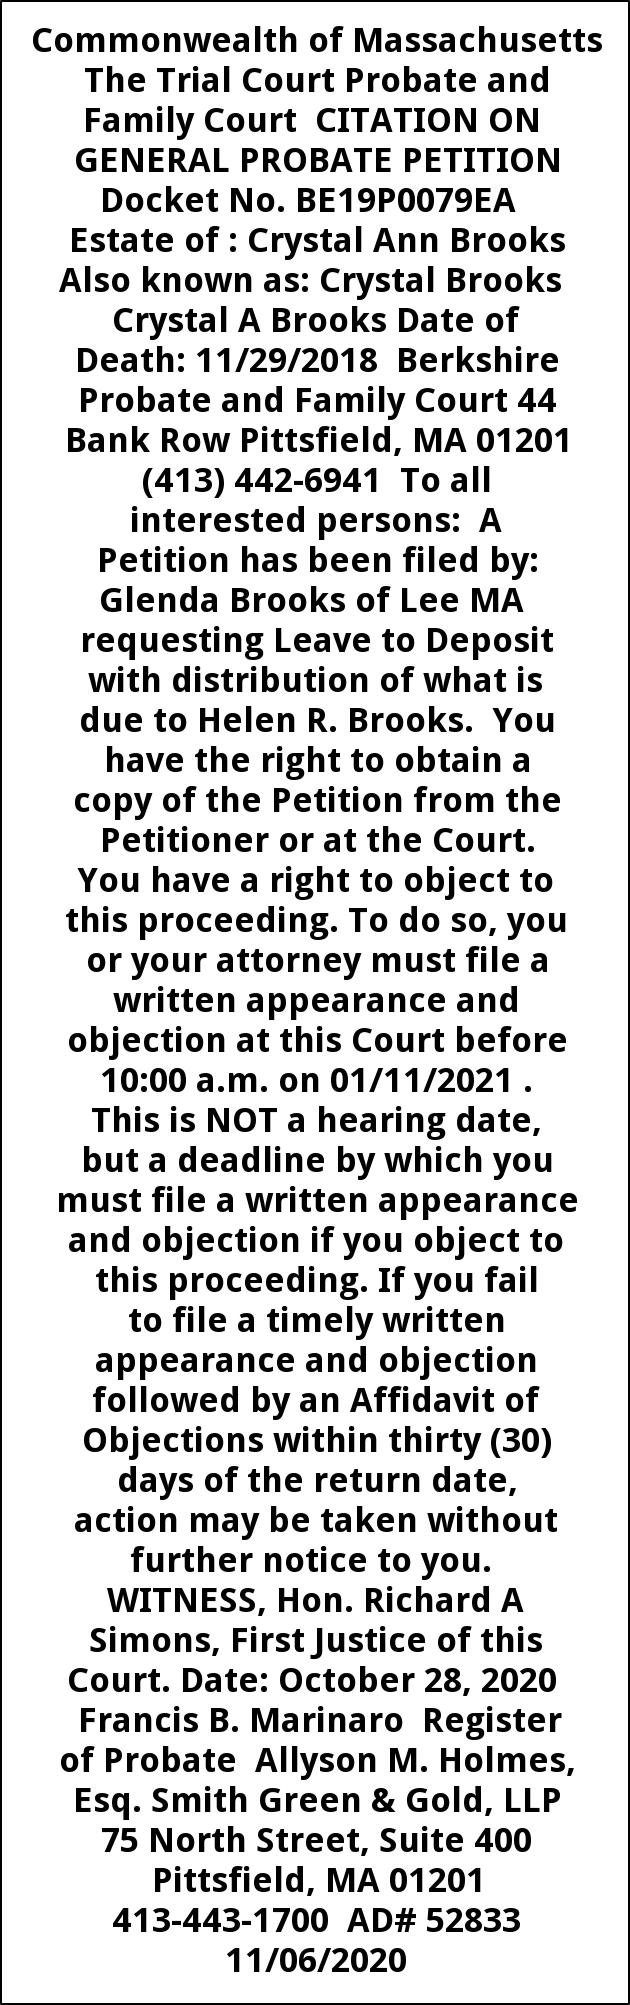 Citation On General Probate Petition